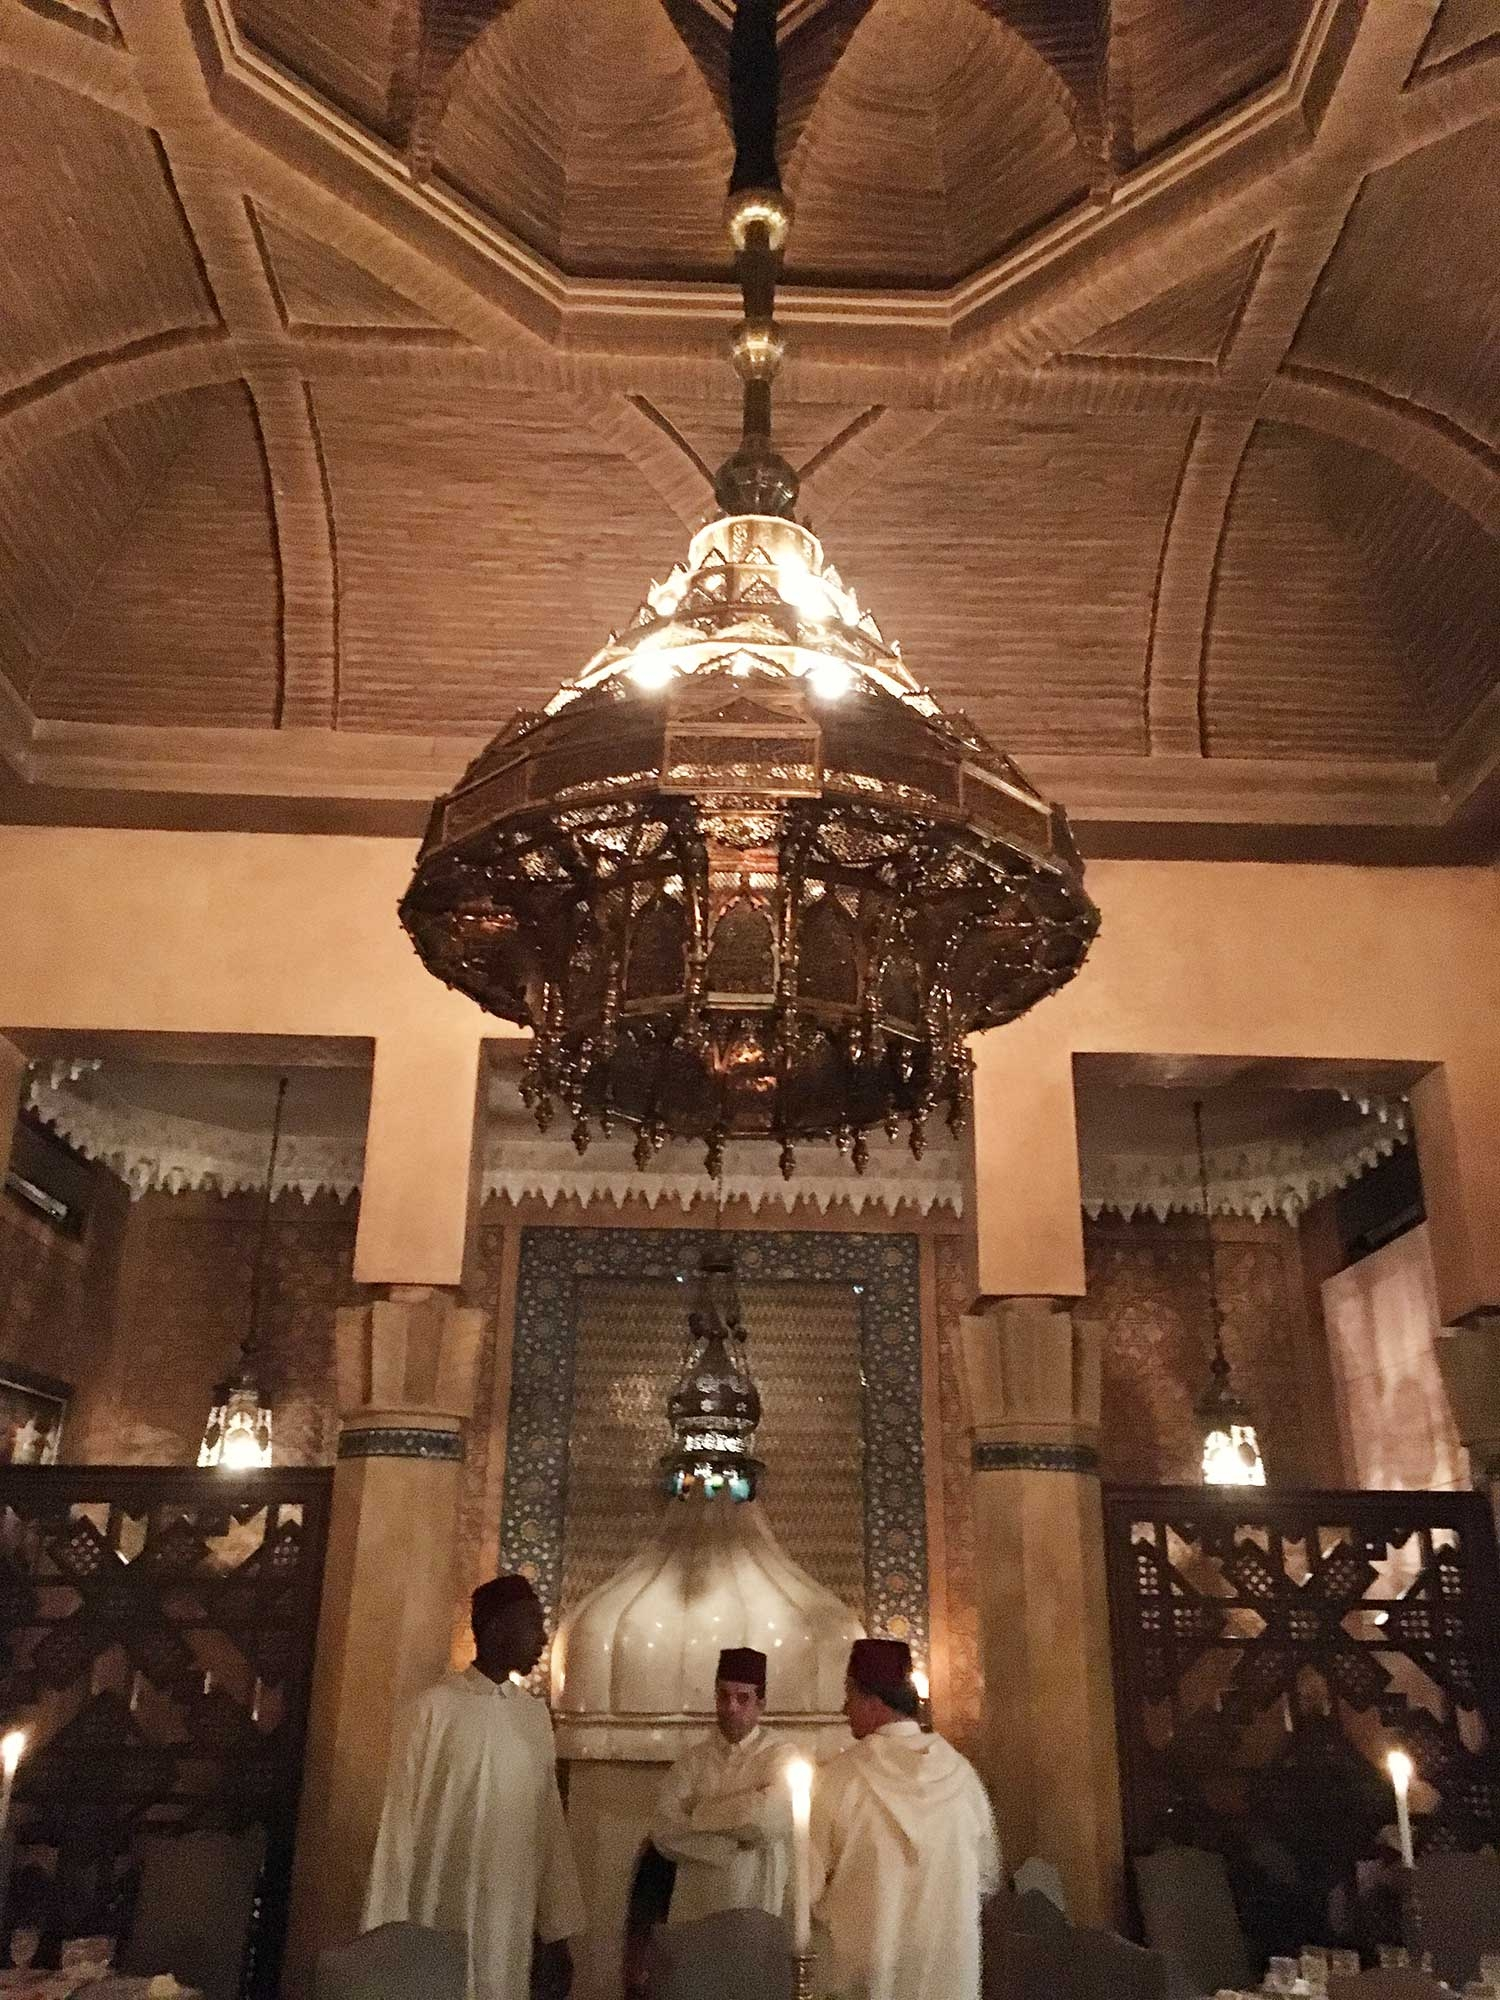 A large gold chandelier hangs in the Dar Yacout